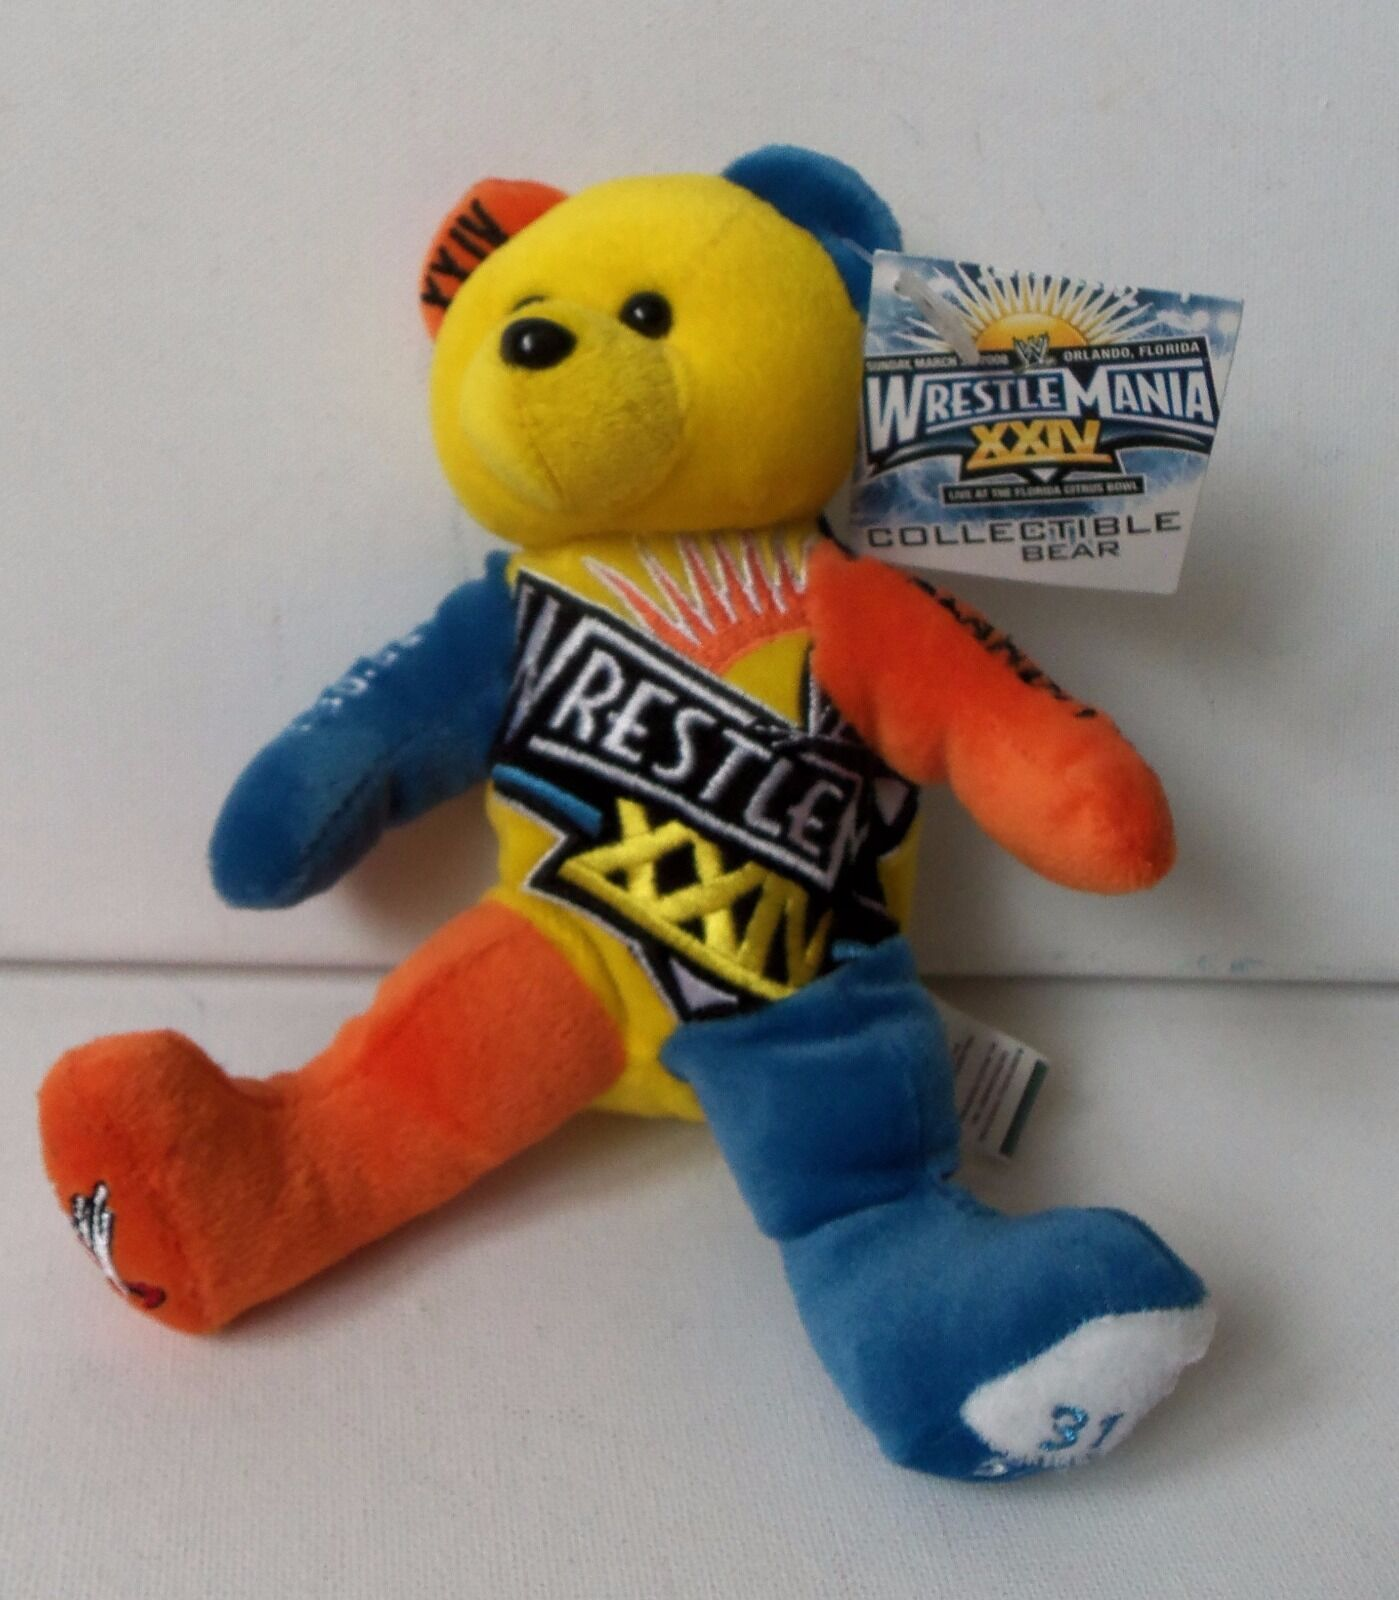 WWE Collectible Plush Teddy Bear Wrestlemania 24th Limited Edition Toy 1 of 5000